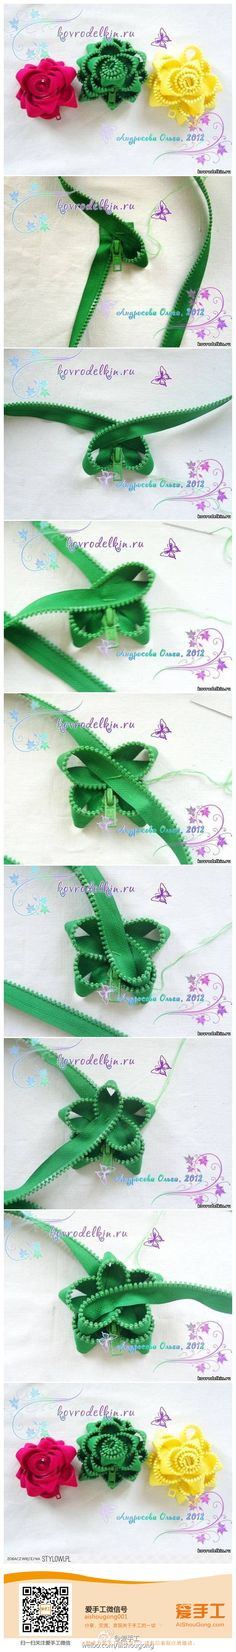 Repurpose for old zipper